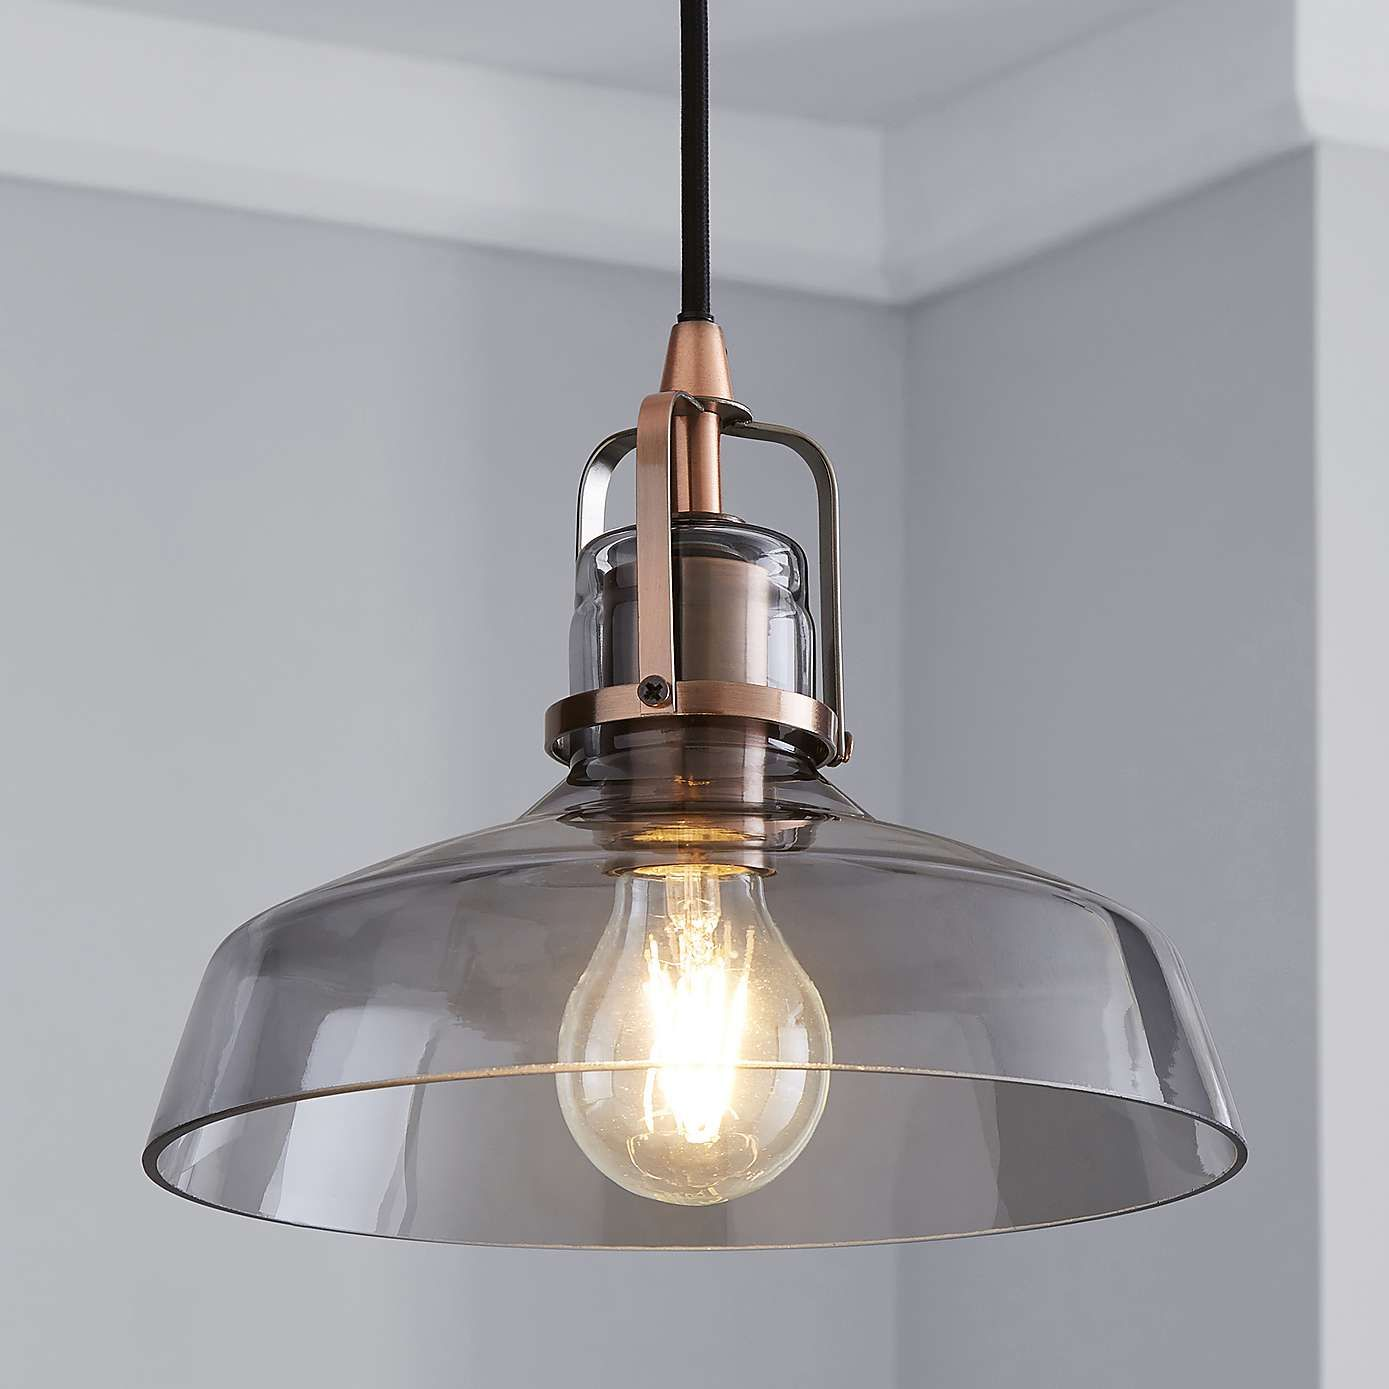 Suva Industrial 1 Light Pendant Smoked Glass Ceiling Fitting Ceiling Lamp Shades Ceiling Lamps Bedroom Smoked Glass